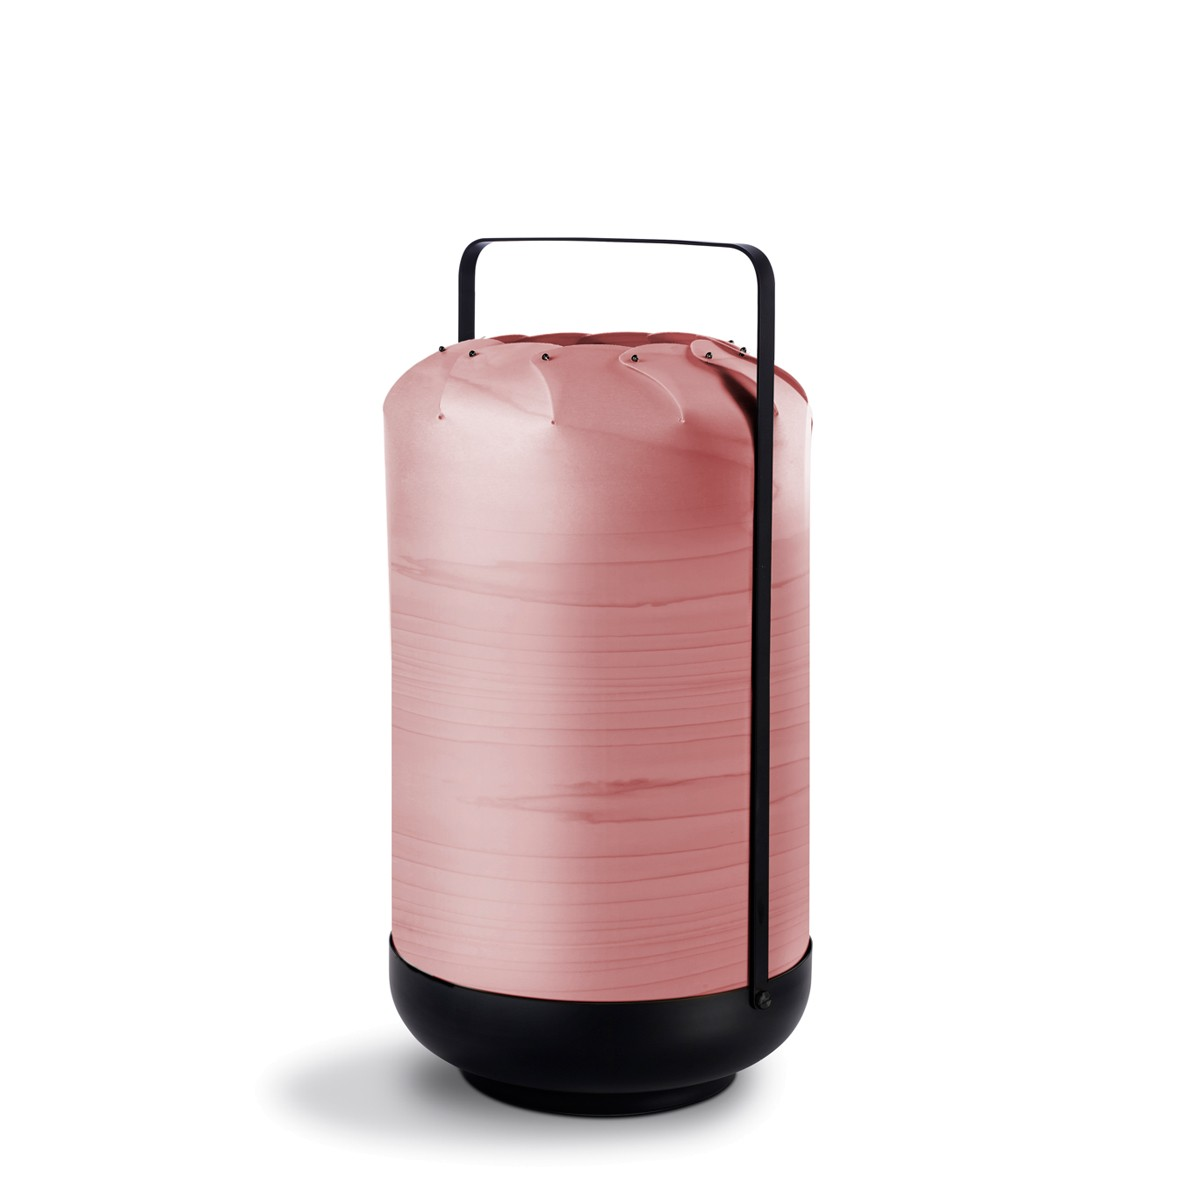 LZF Lamps Chou Tall Tischleuchte, pink